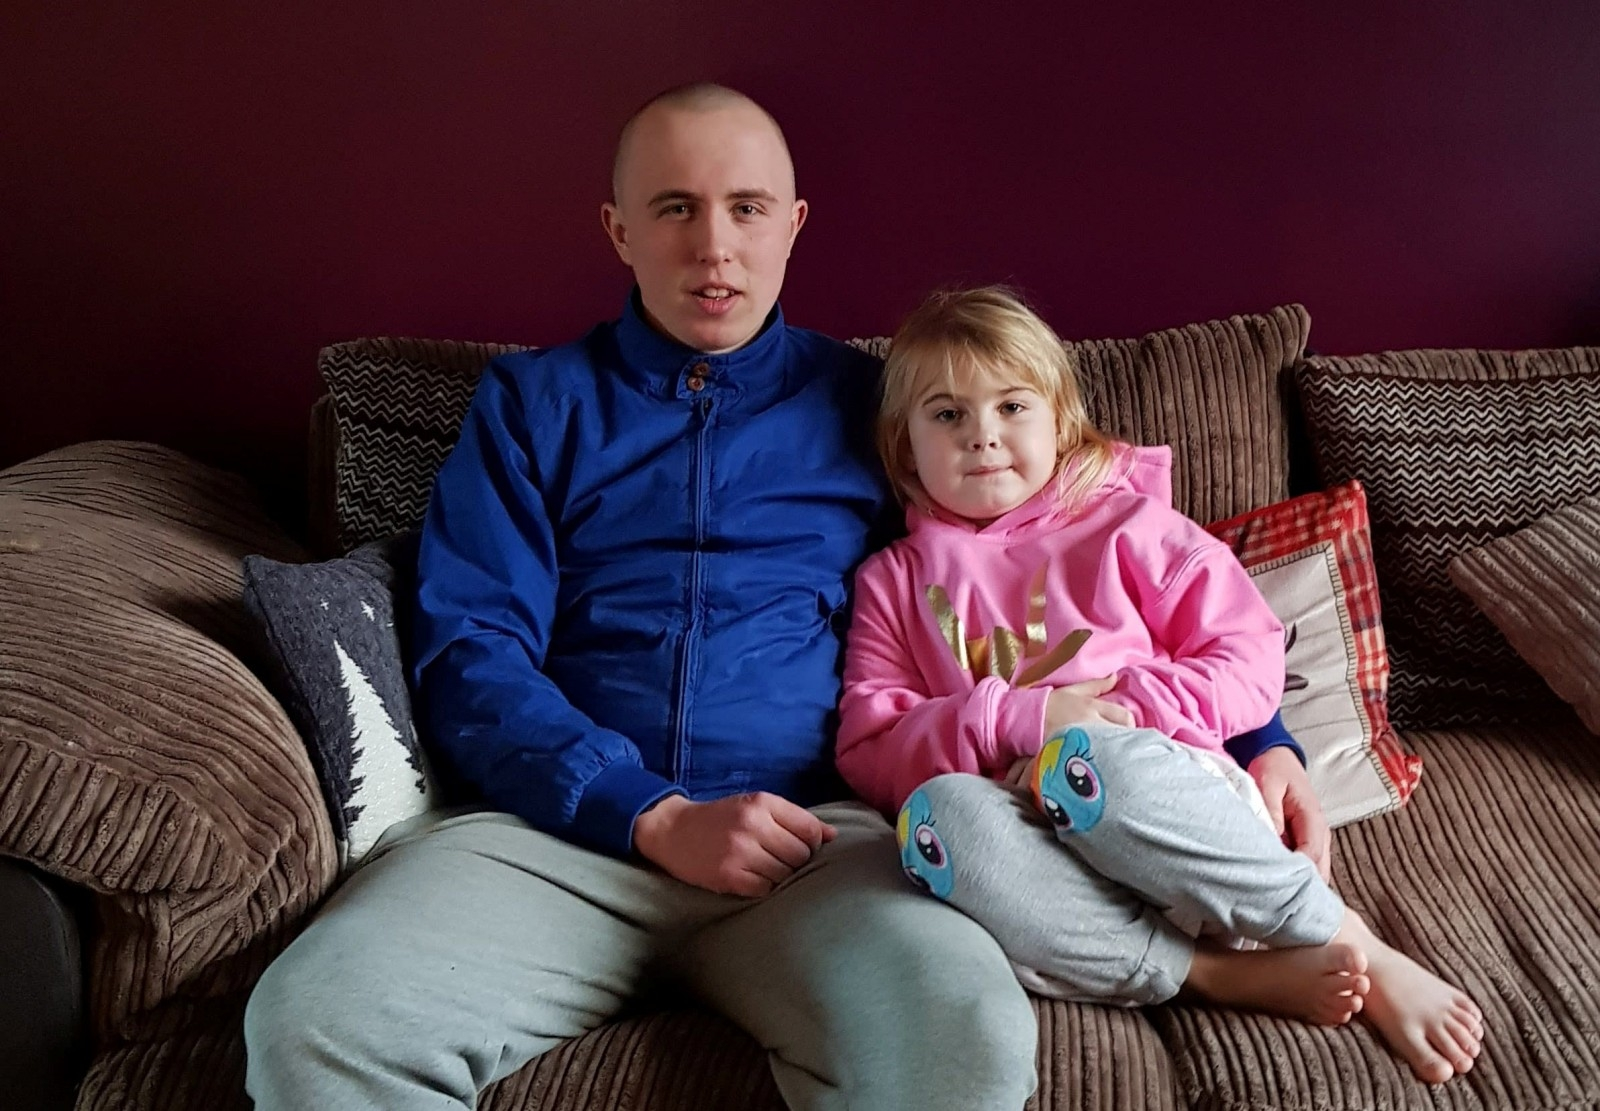 Kindhearted Brother Shows Unbreakable Bond With Little Sister - By Letting Her Shave His Head After She Was Diagnosed With Cancer